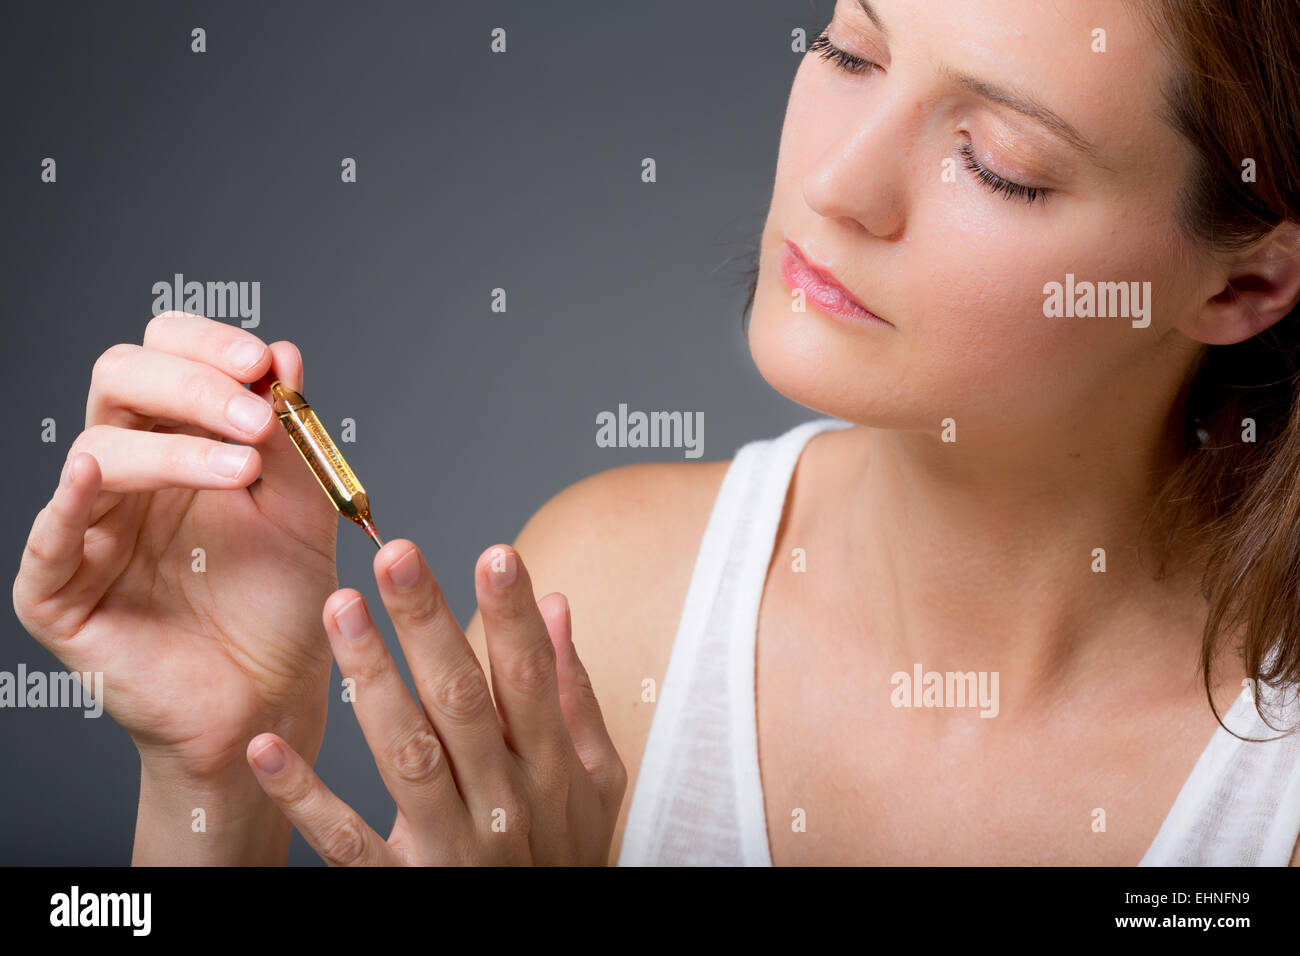 Woman holding glass ampoule of vitamin D. - Stock Image